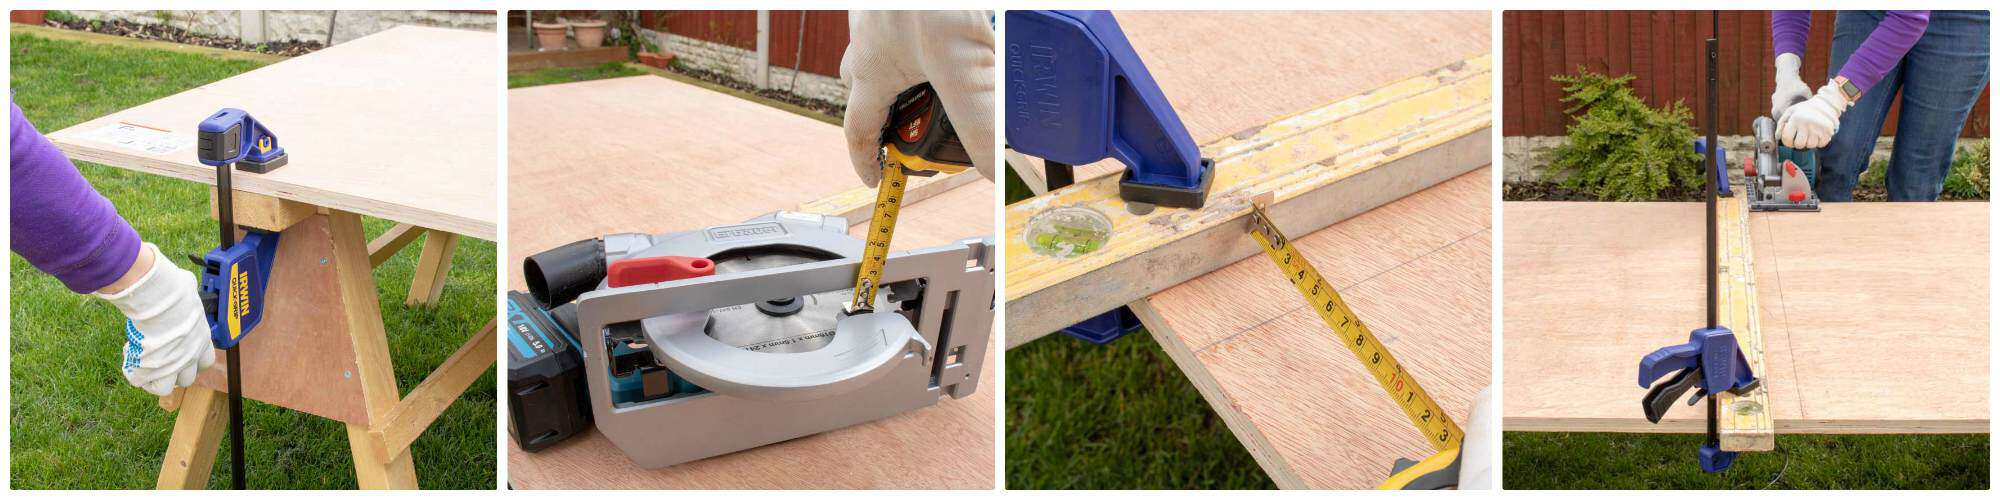 clamping wood and measuring circular saw fence before cutting